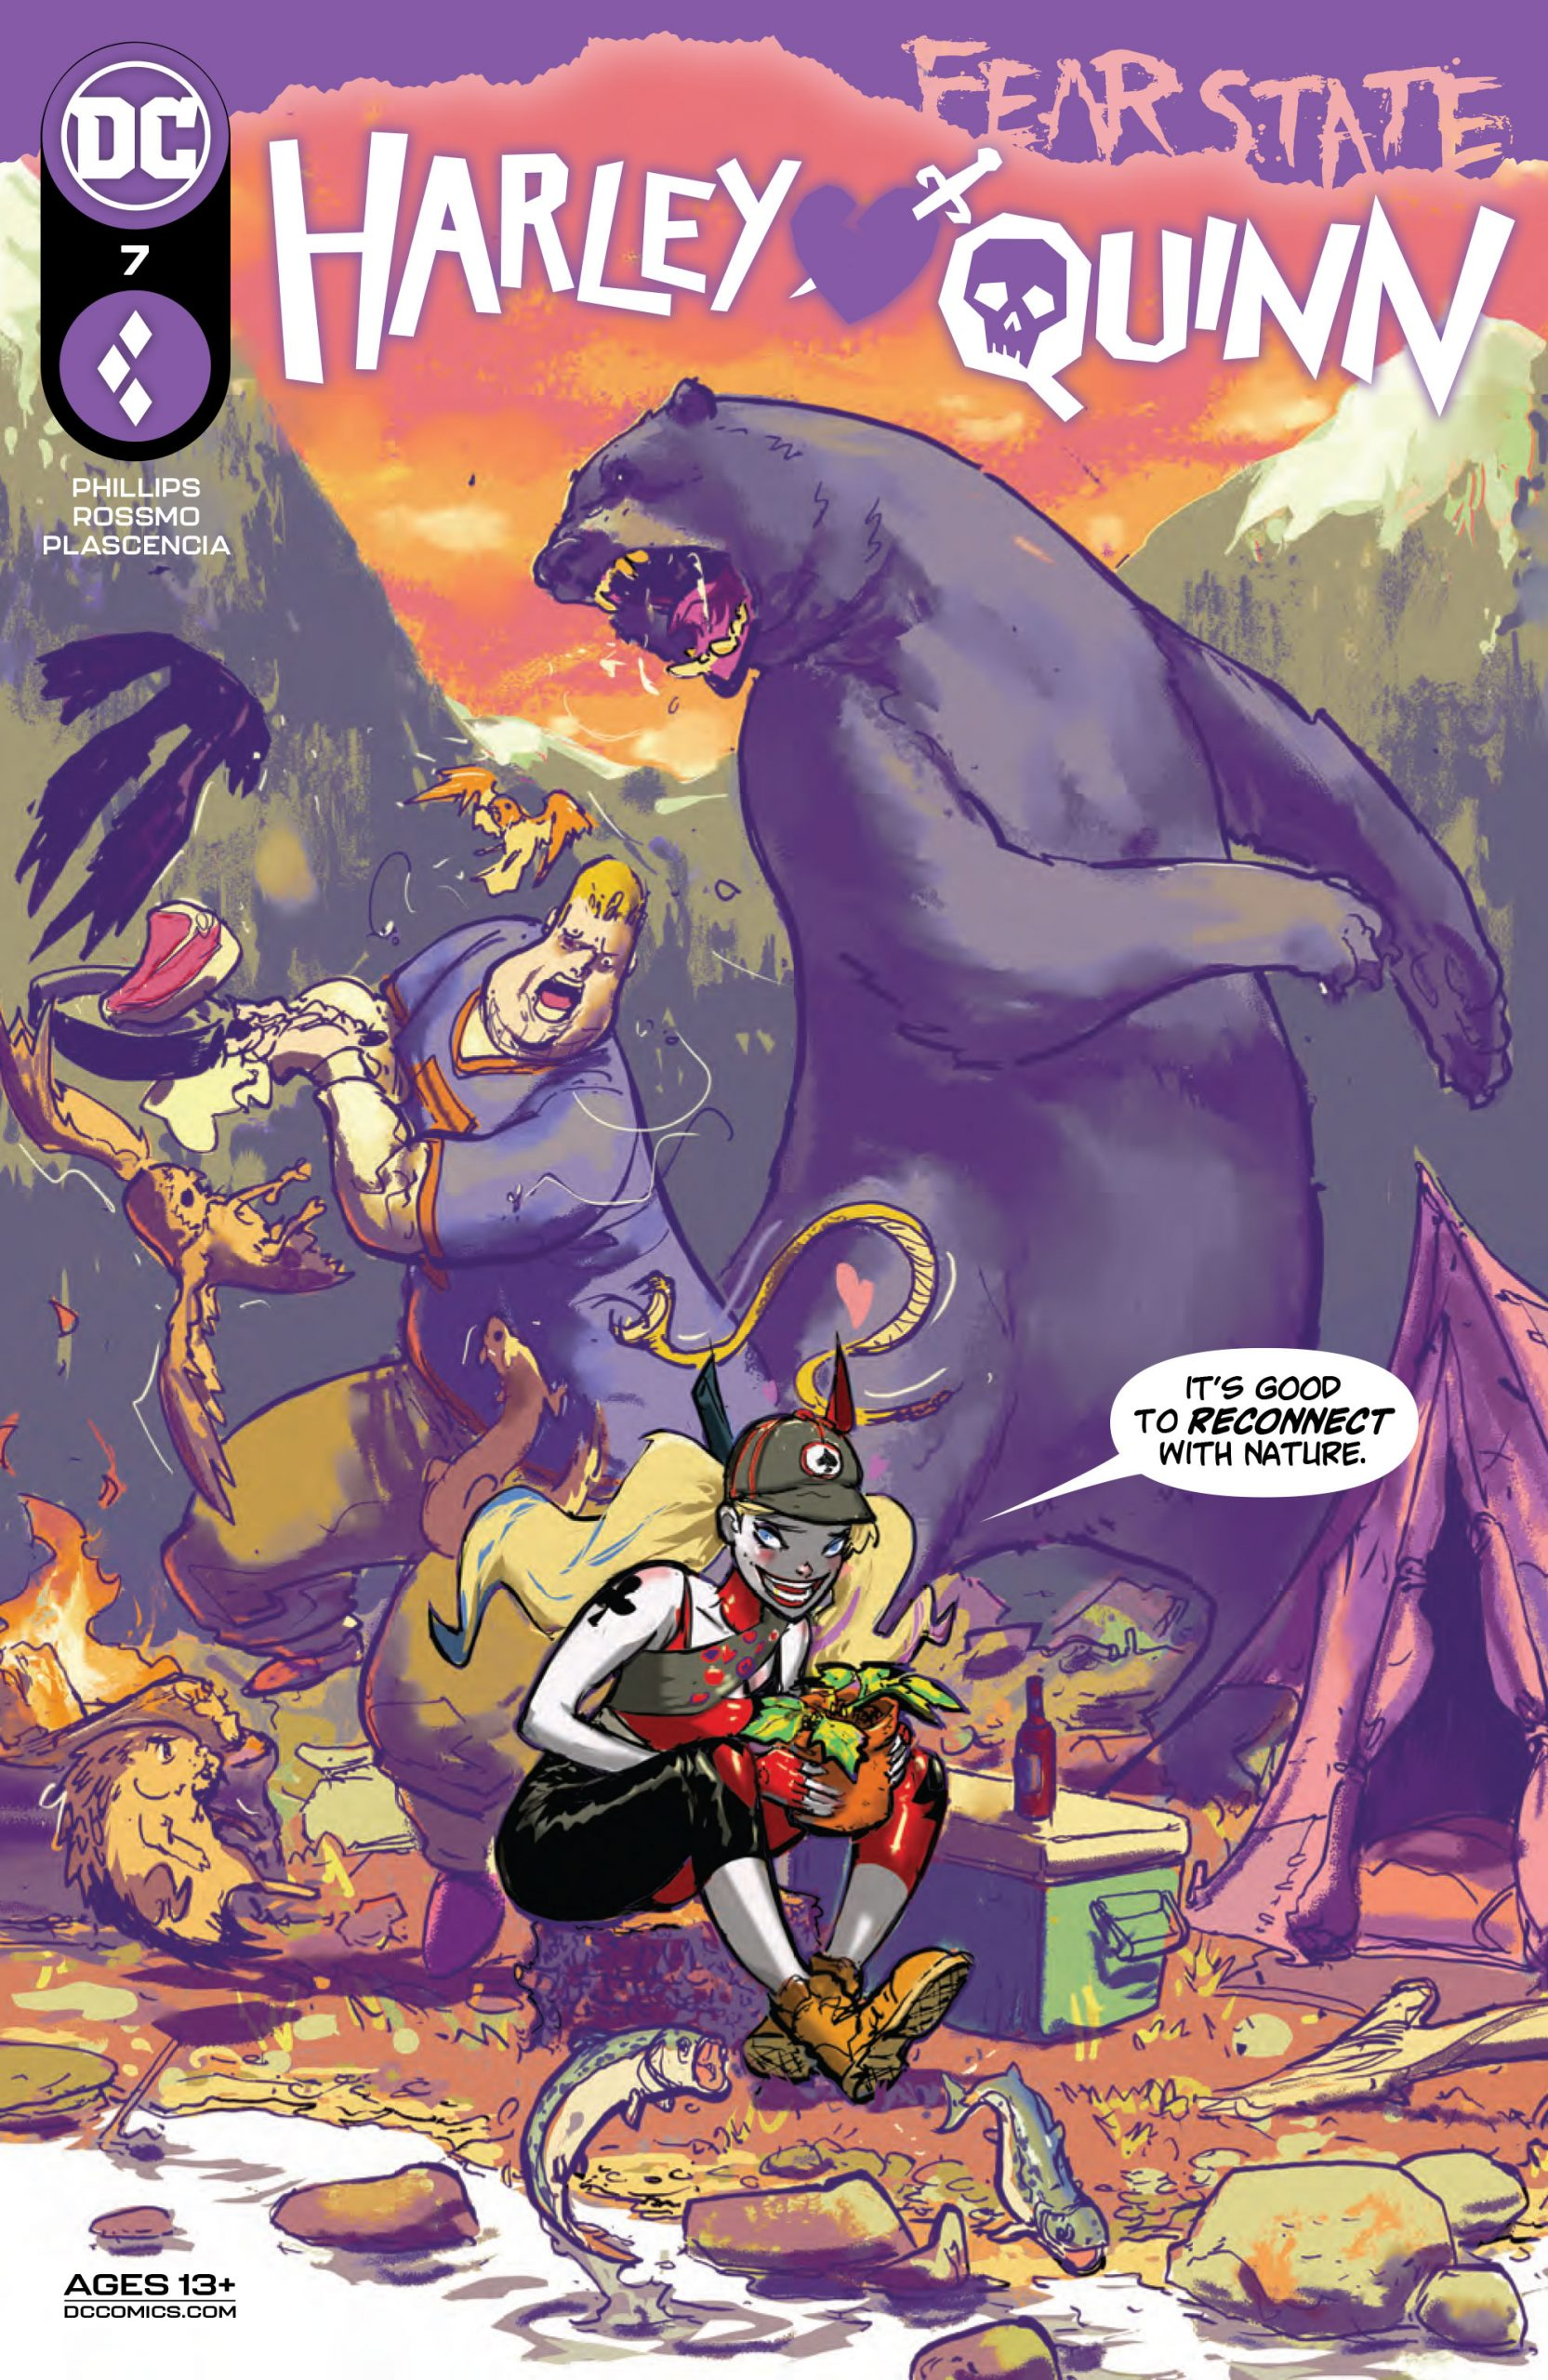 DC Preview: Harley Quinn #7